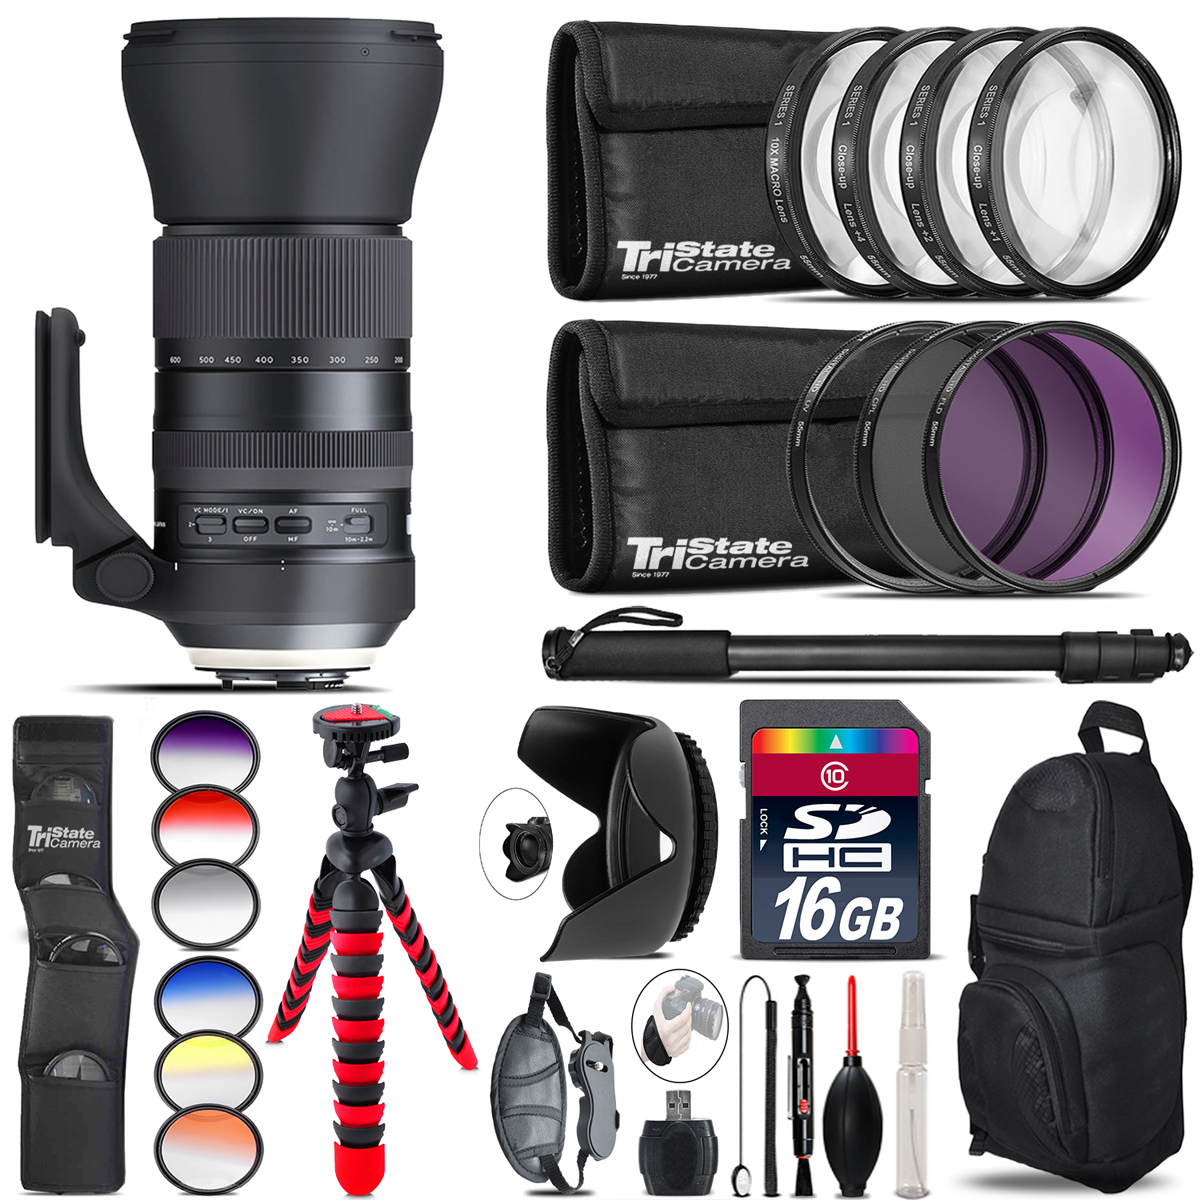 Tamron 150-600mm G2 for Canon + Graduated Color Filter - 16GB Accessory Kit *FREE SHIPPING*